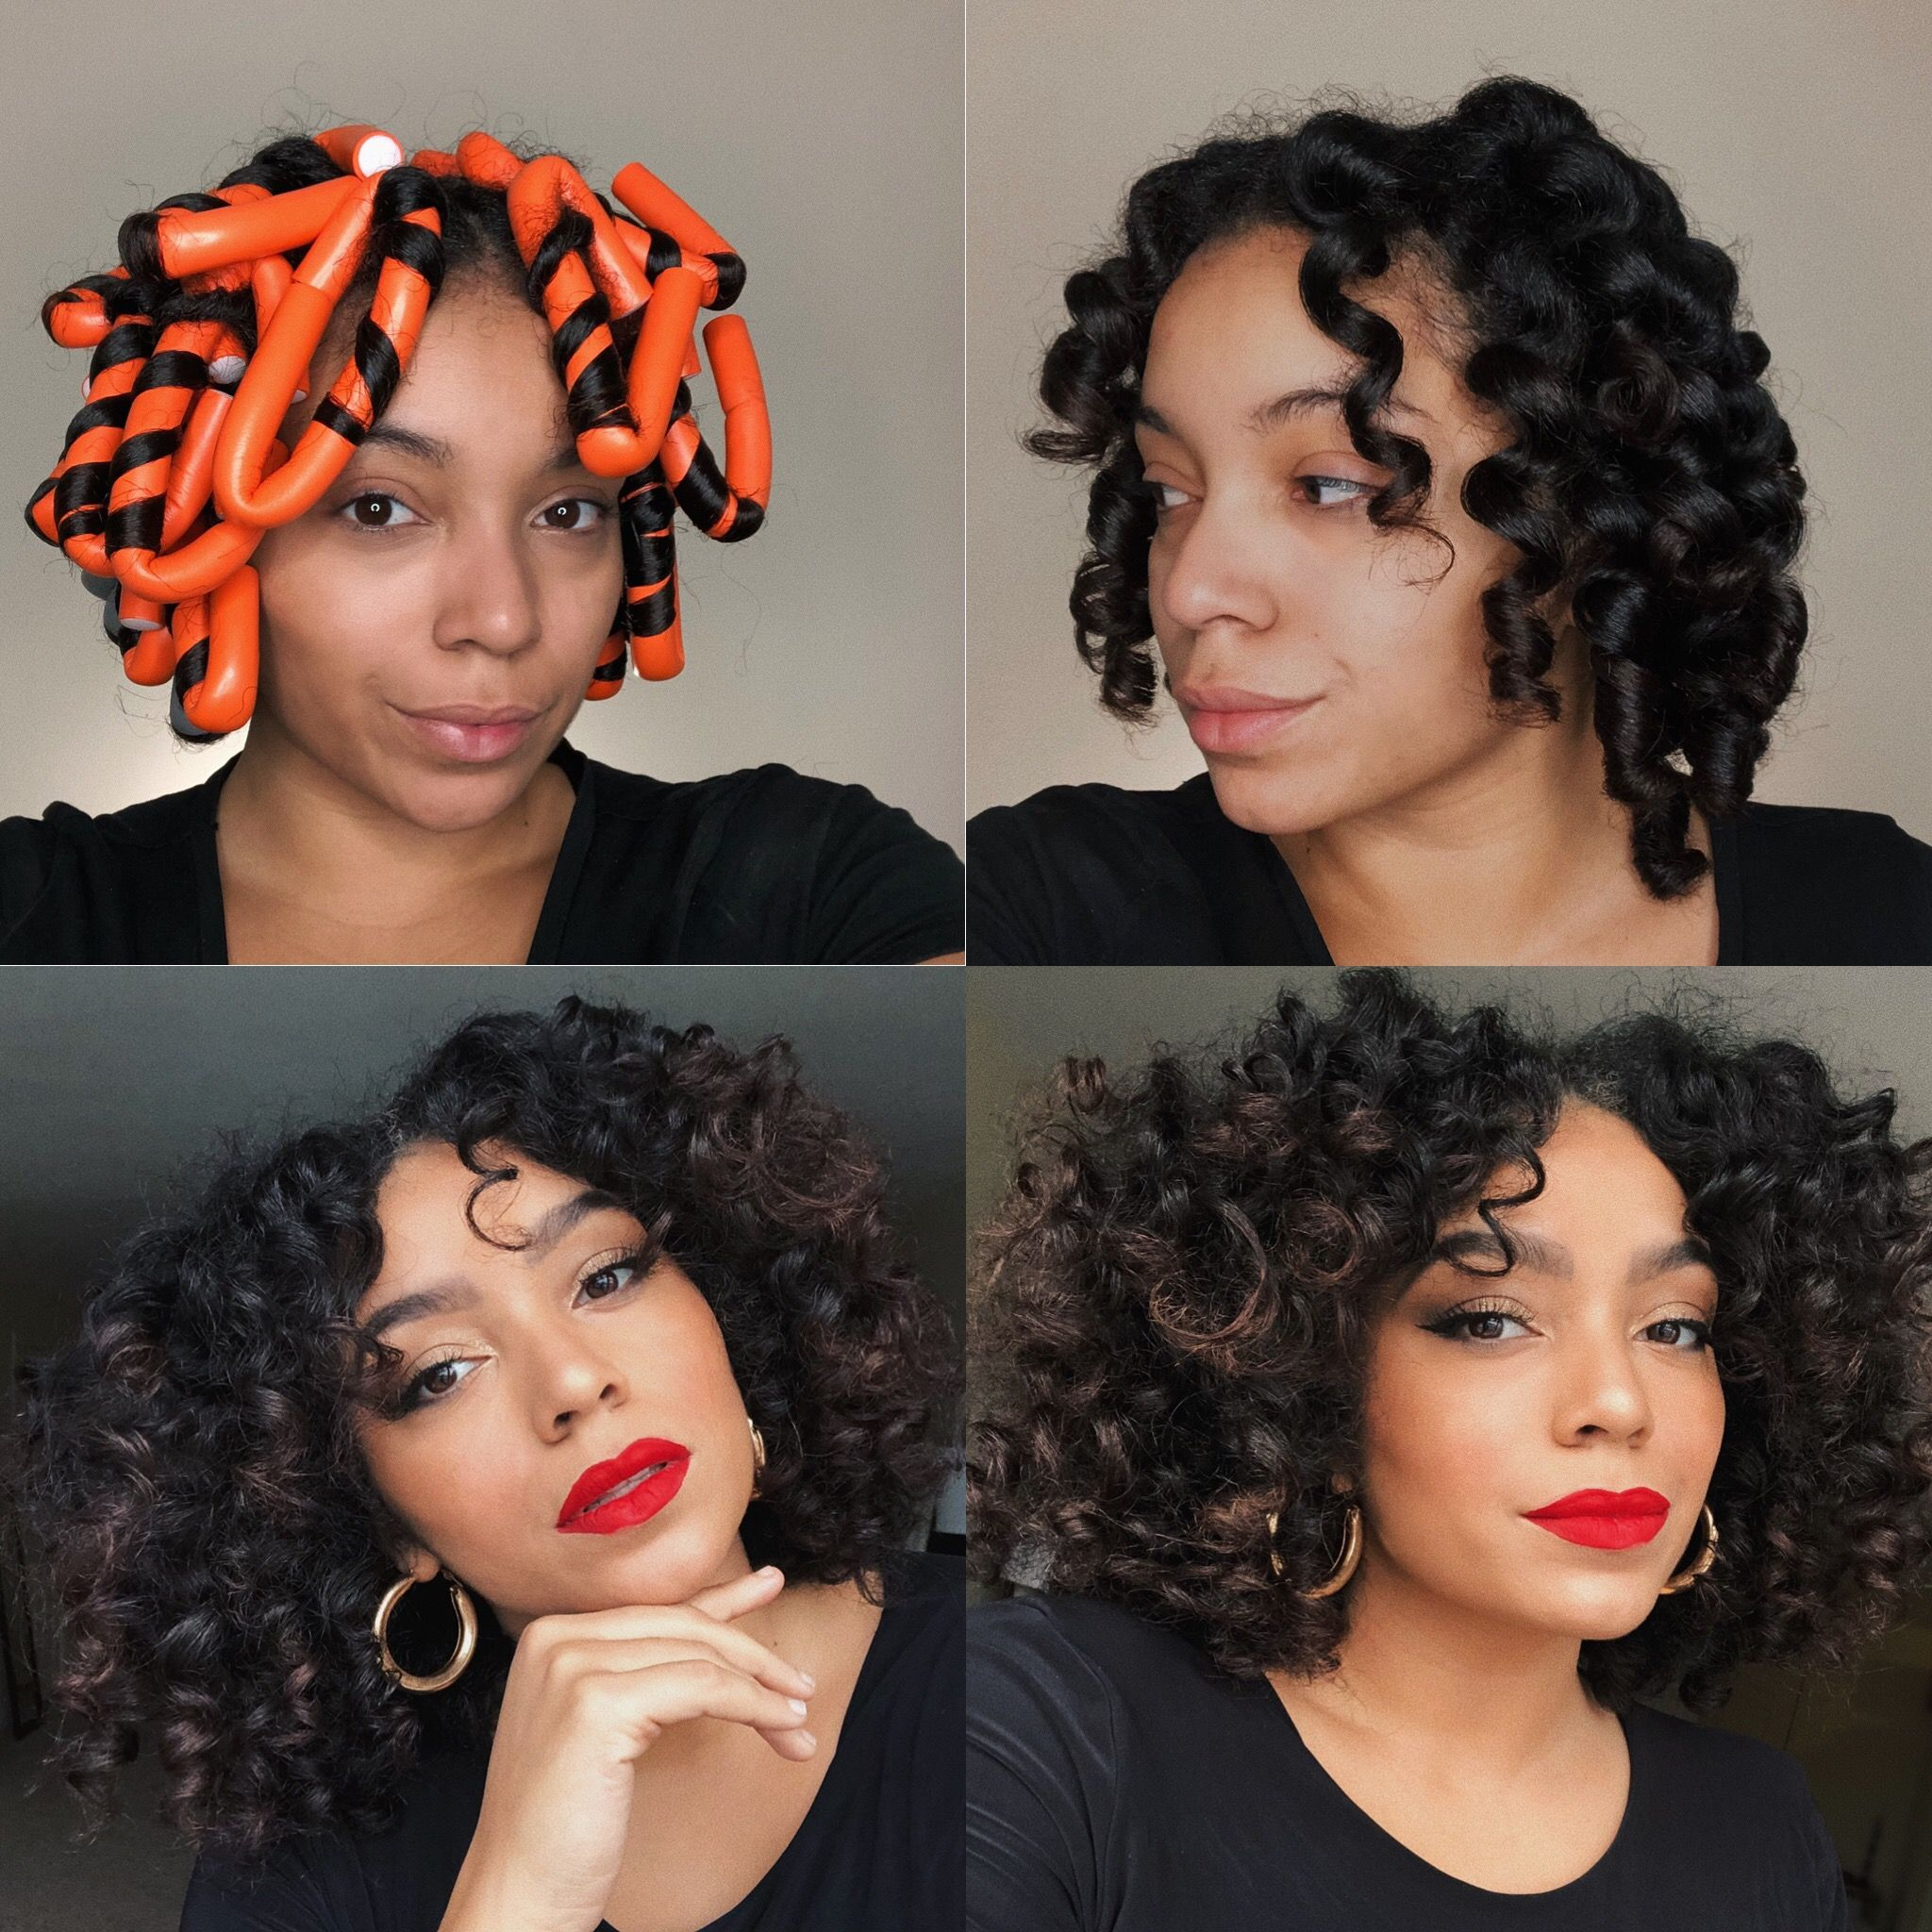 Flexi Rod Set Heatlesscurls Naturalhair Flexirods Short Natural Hair Styles Natural Hair Styles Natural Hair Flexi Rods